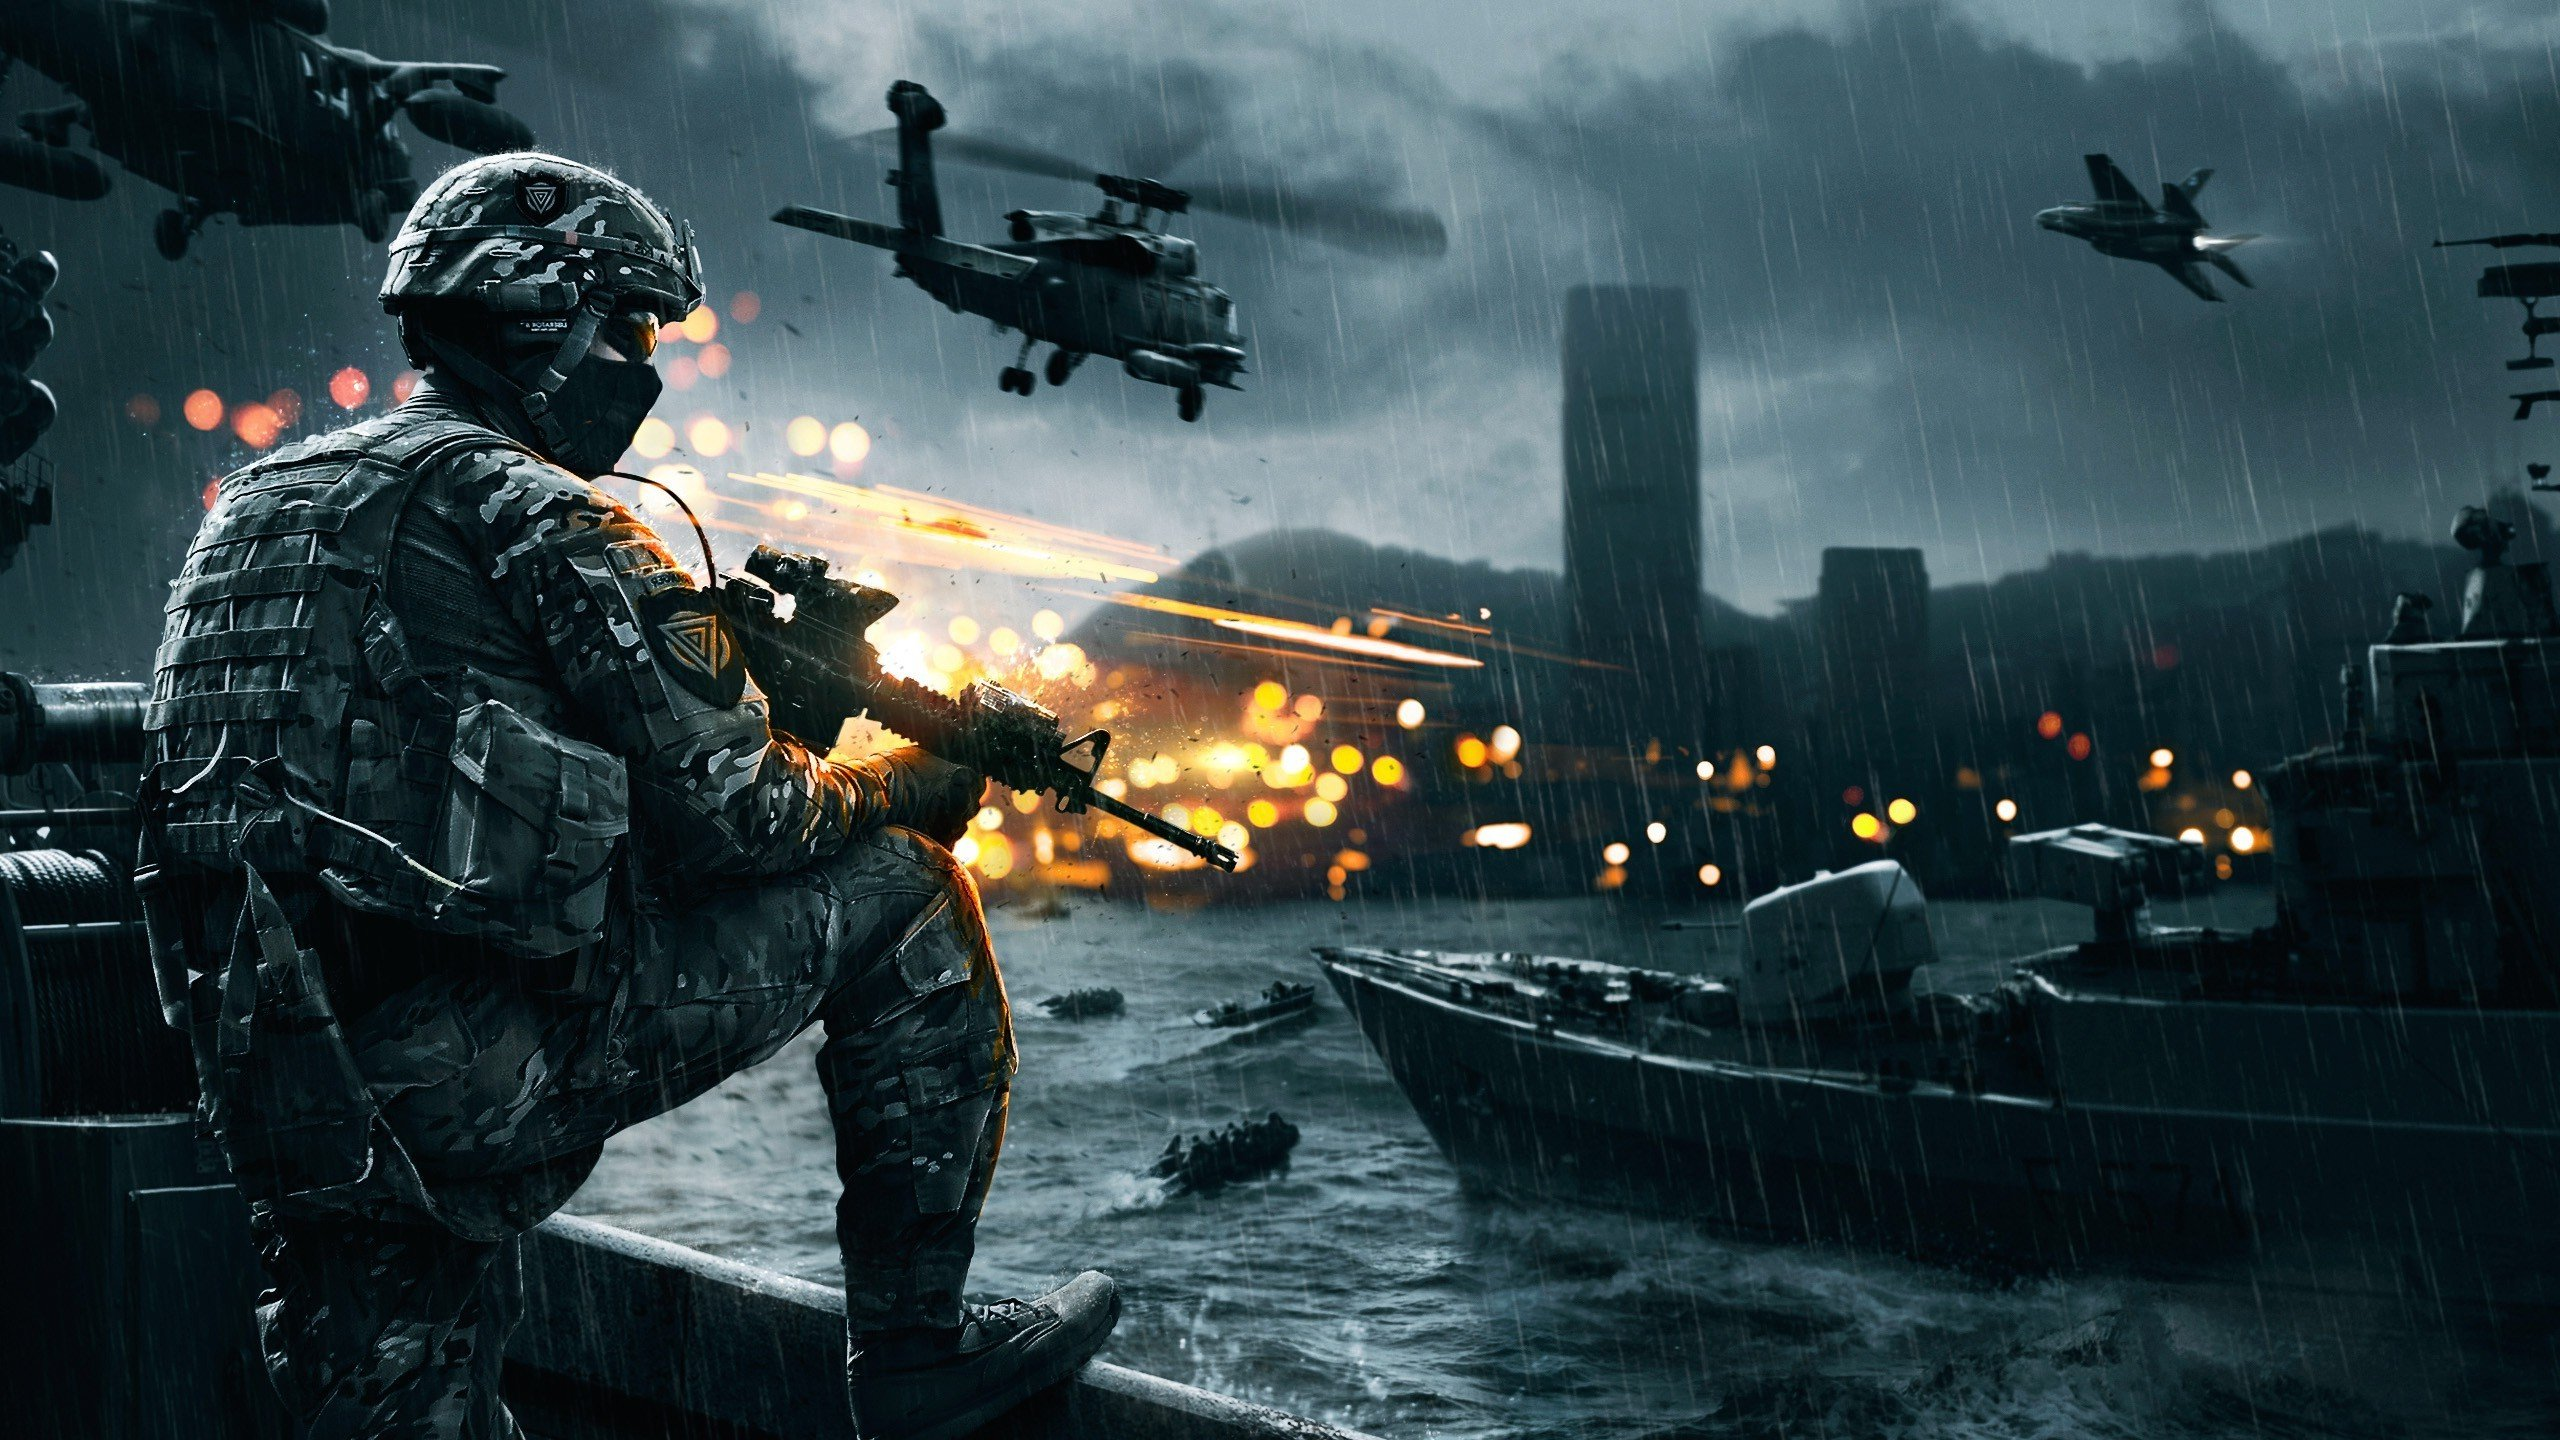 Battlefield 4 Wallpaper 2560x1440 Battlefield game hd wallpaper 2560x1440